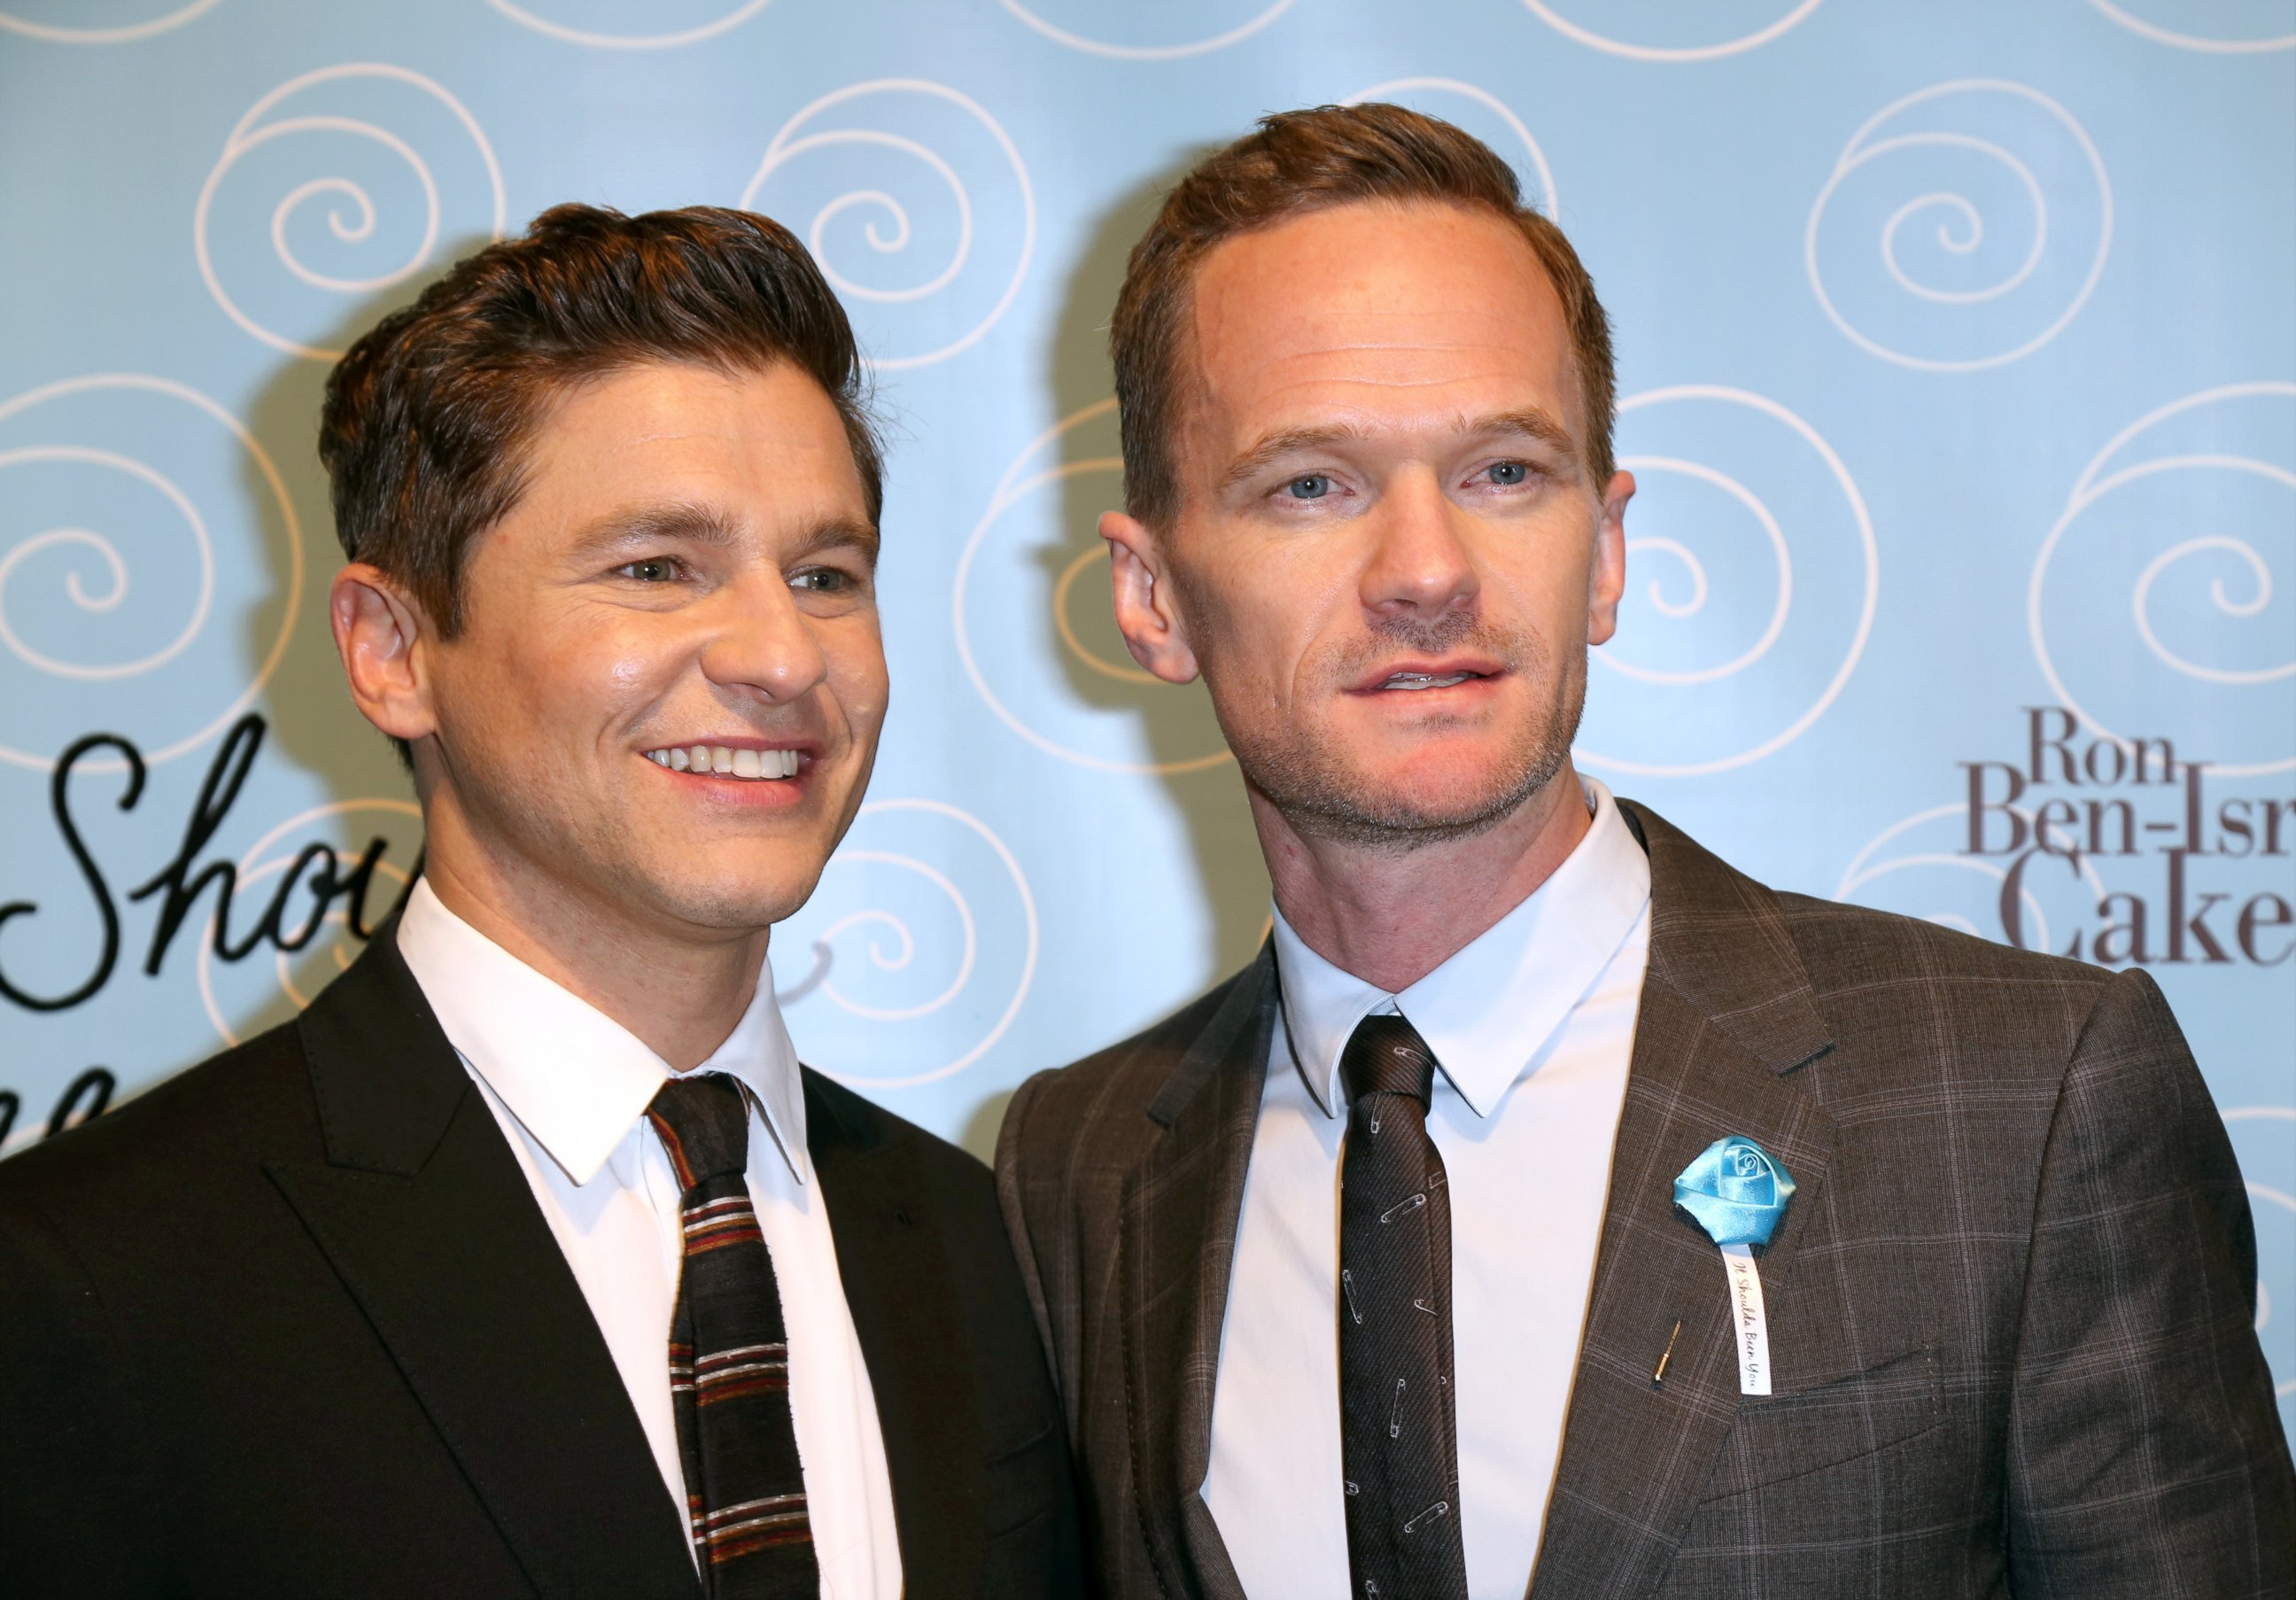 Neil Patrick Harris Photos And Images